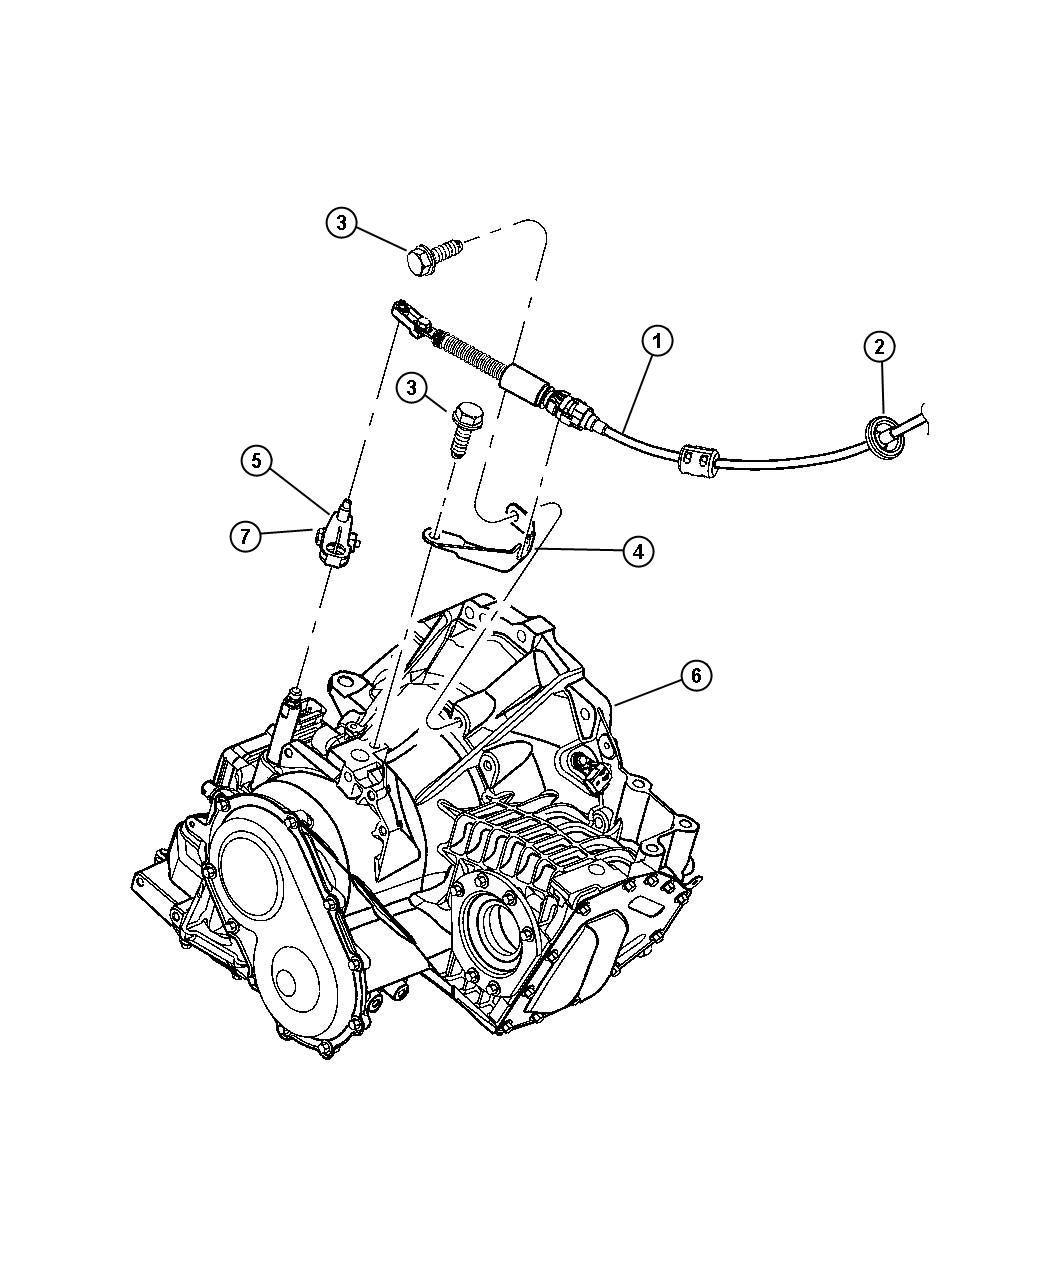 1997 oldsmobile silhouette electrical system wiring diagram